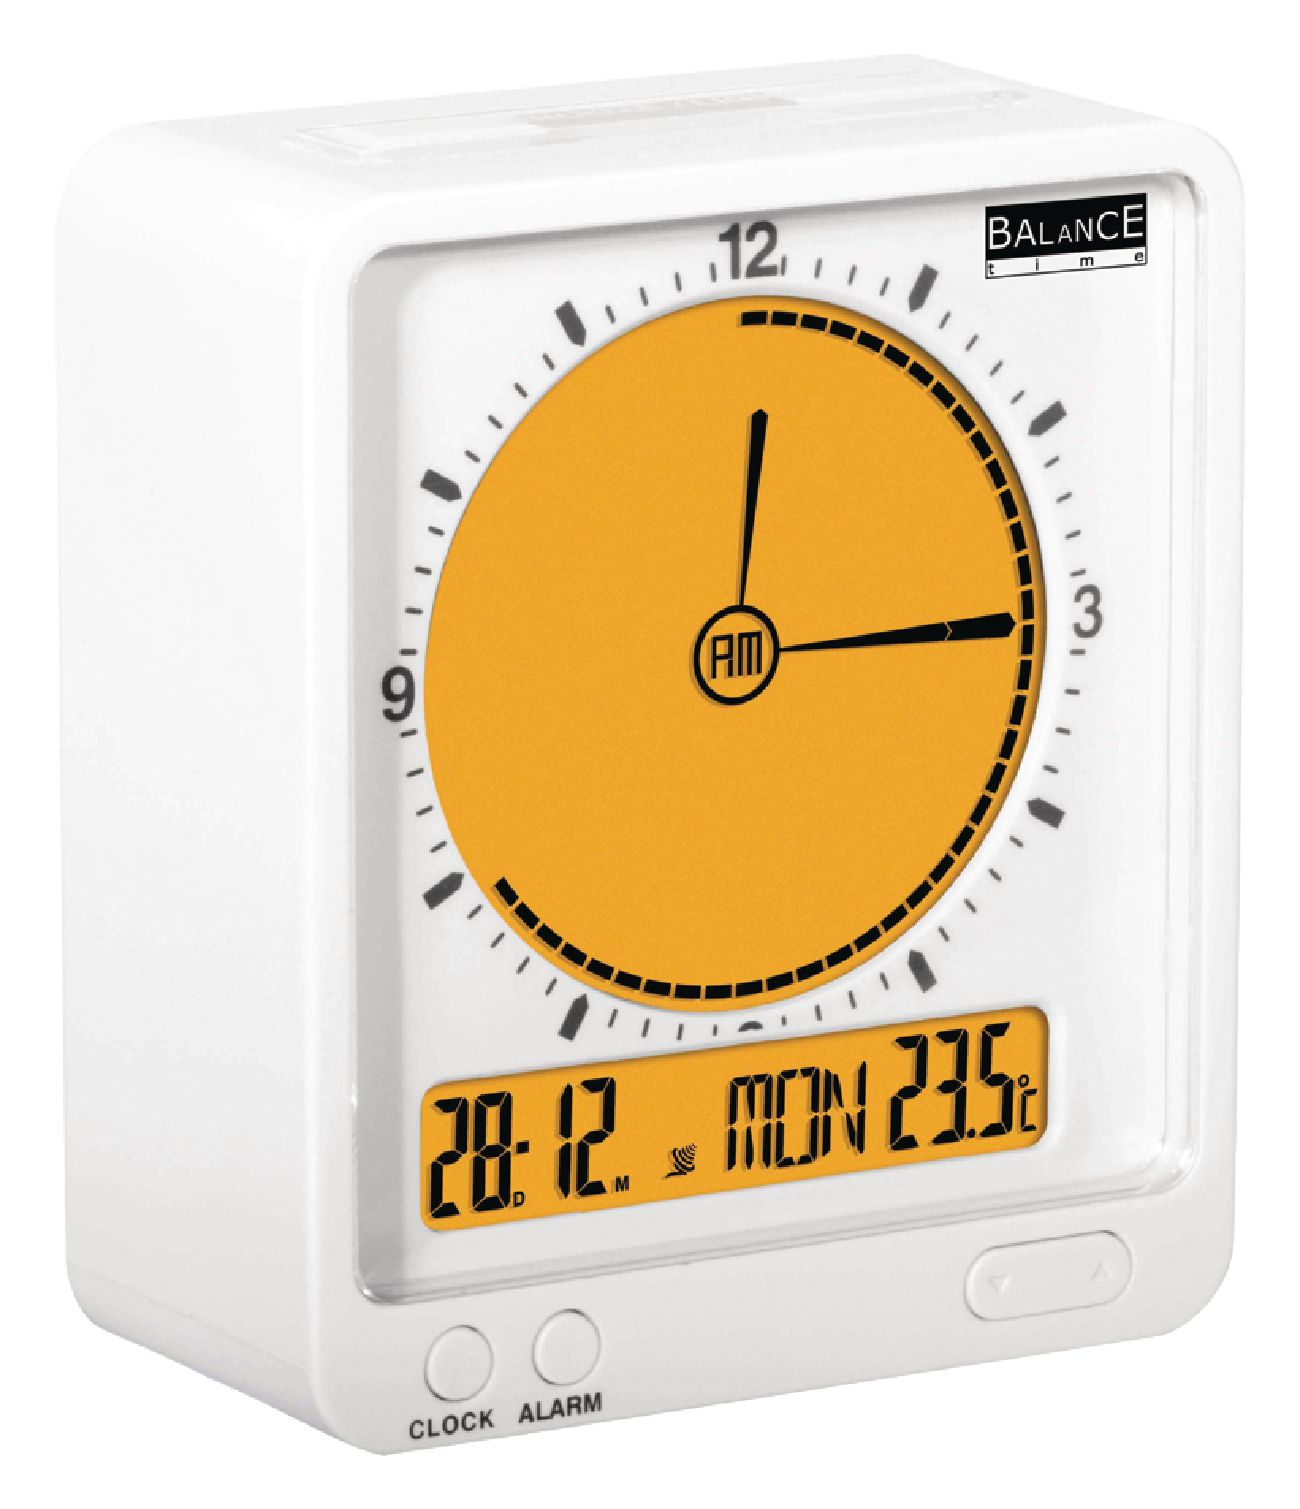 he clock 36 balance radio controlled alarm clock digital white orange electronic. Black Bedroom Furniture Sets. Home Design Ideas